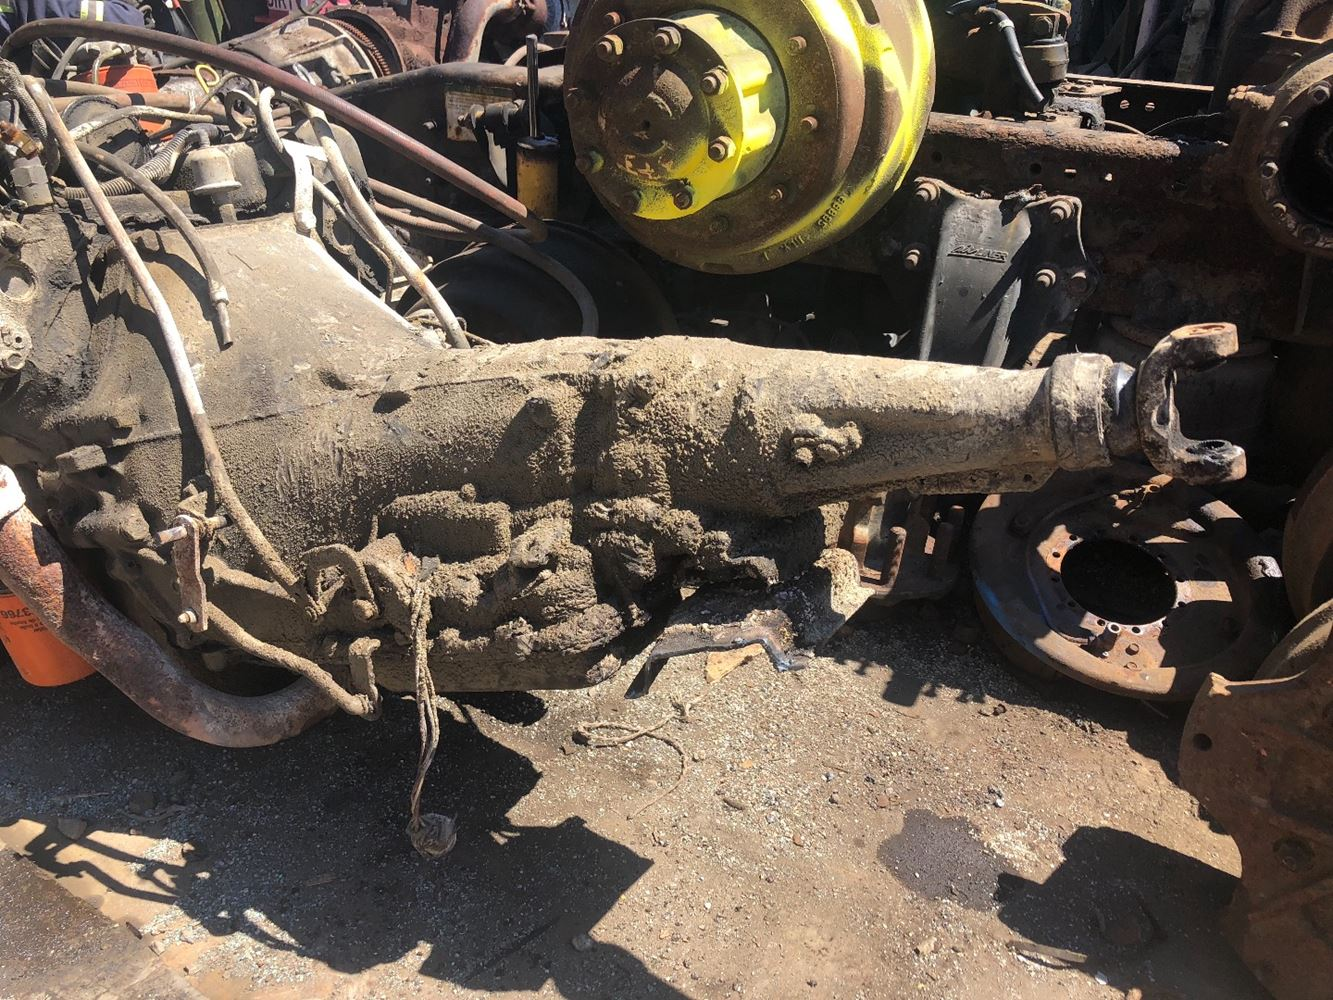 1986 Ford C6 Stock T Salvage 1657 Fotm 2141 Transmission Assys 20 July 2018 Image Subject To Change